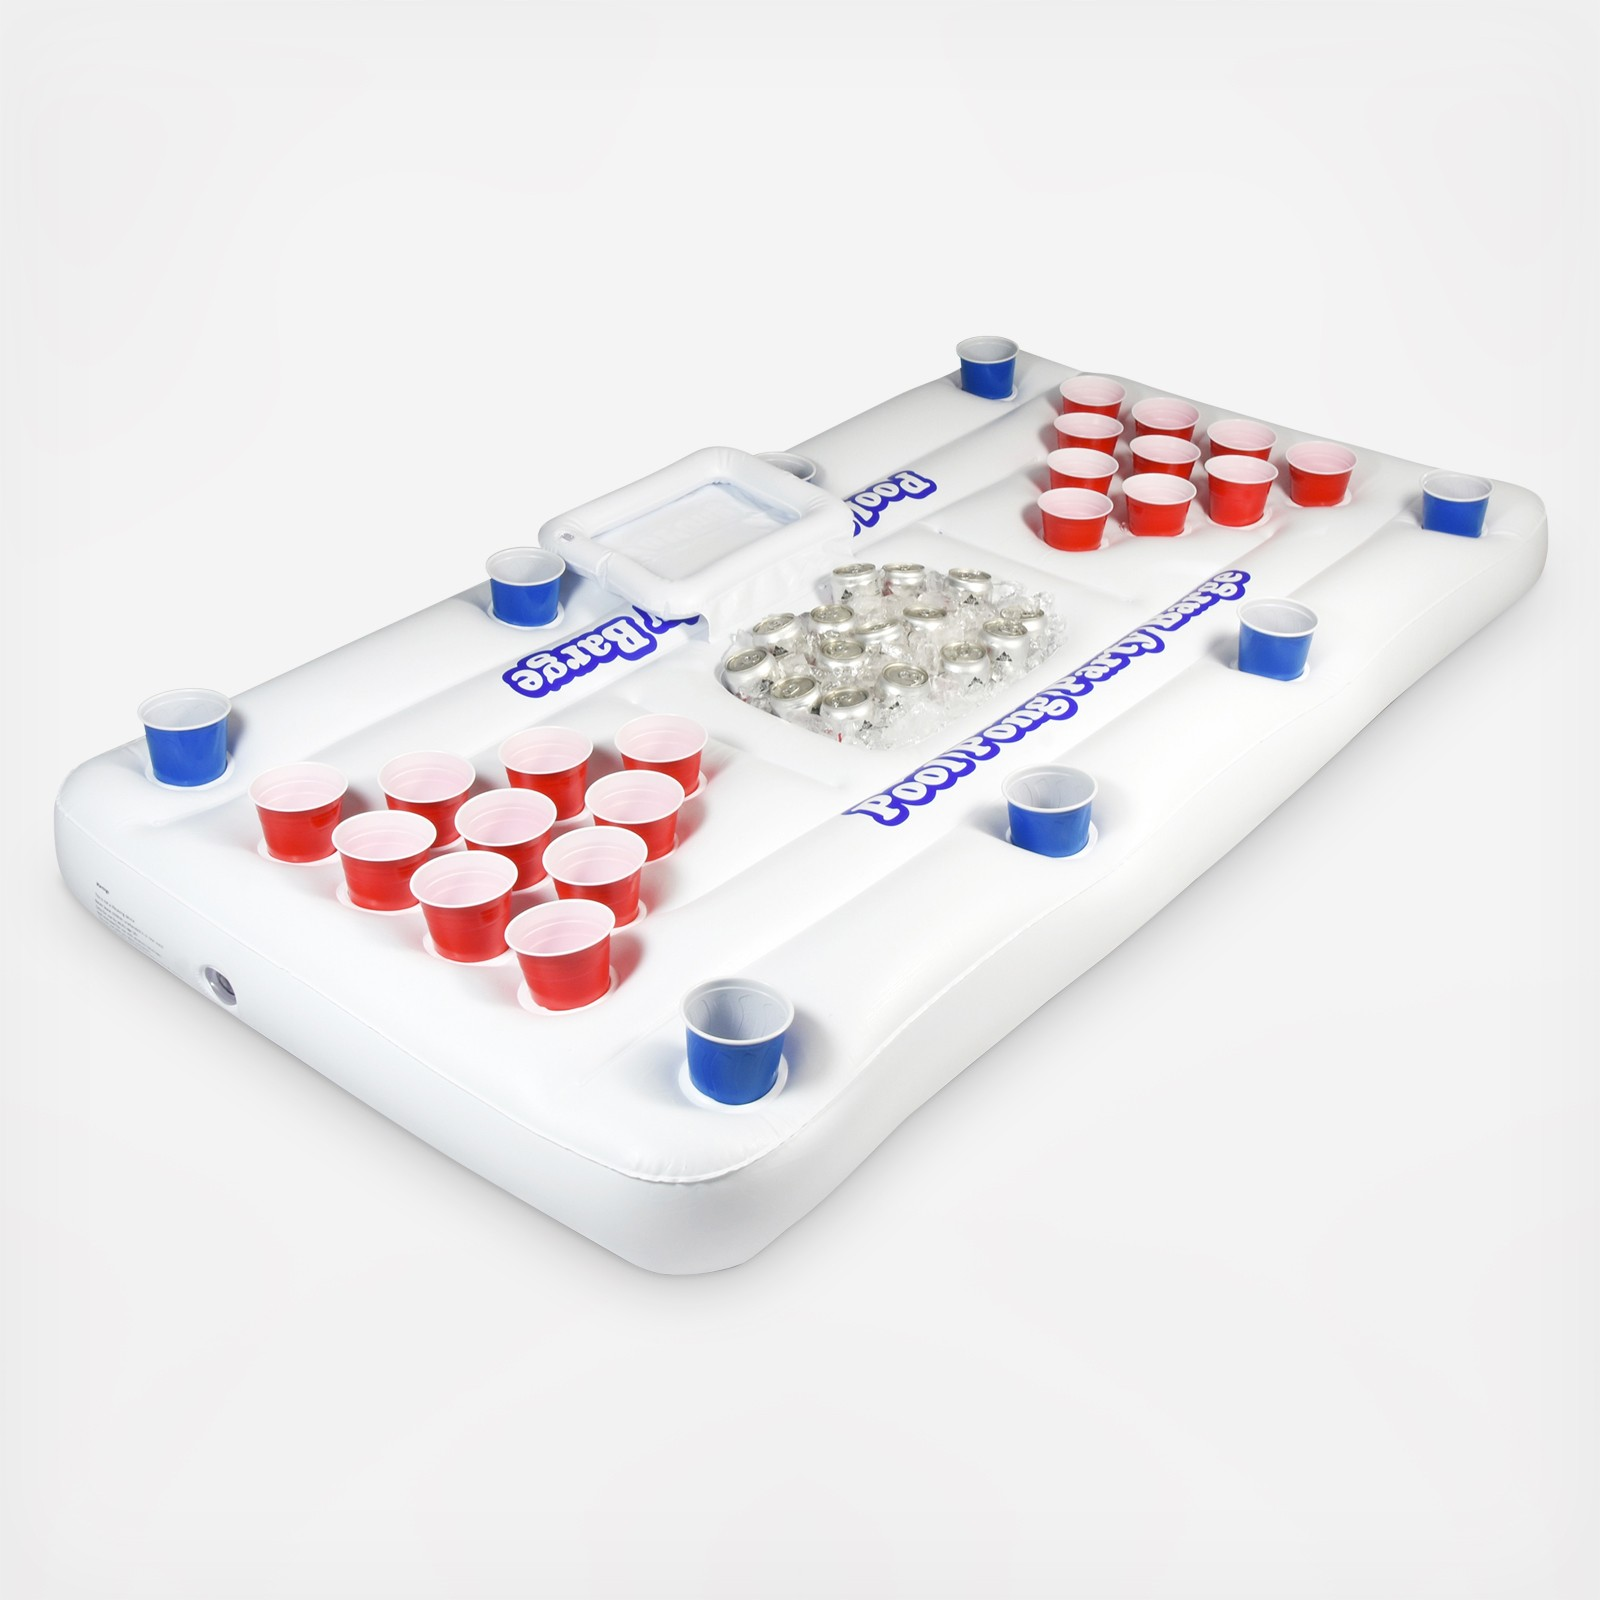 Fabulous Gopong Pool Party Barge Floating Beer Pong Table With Cooler By Gosports Wedding Planning Registry Gifts Download Free Architecture Designs Pushbritishbridgeorg